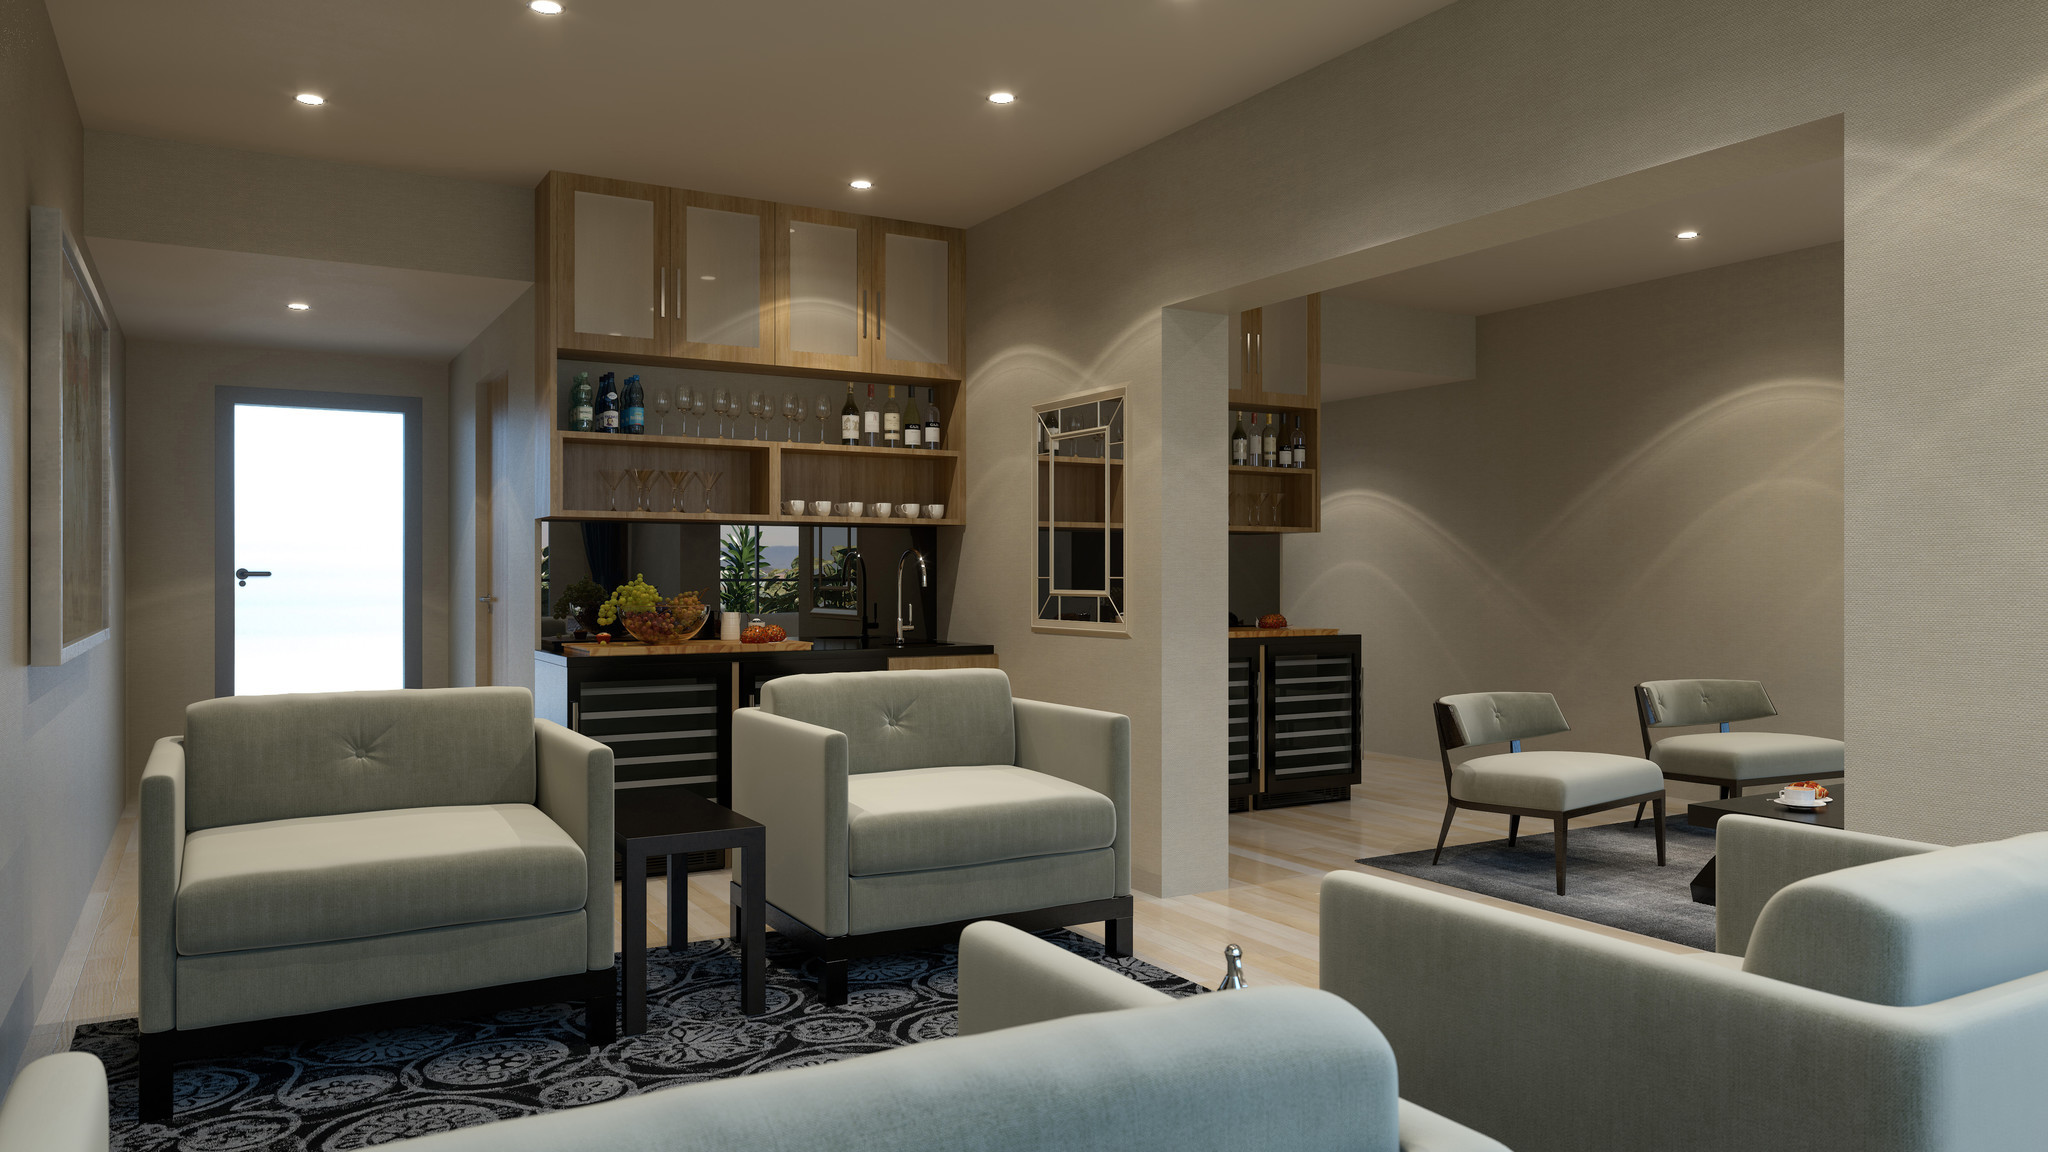 One of 13 private rooms at the new Private Suite at LAX. Amenities include a stocked refrigerator and snacks.